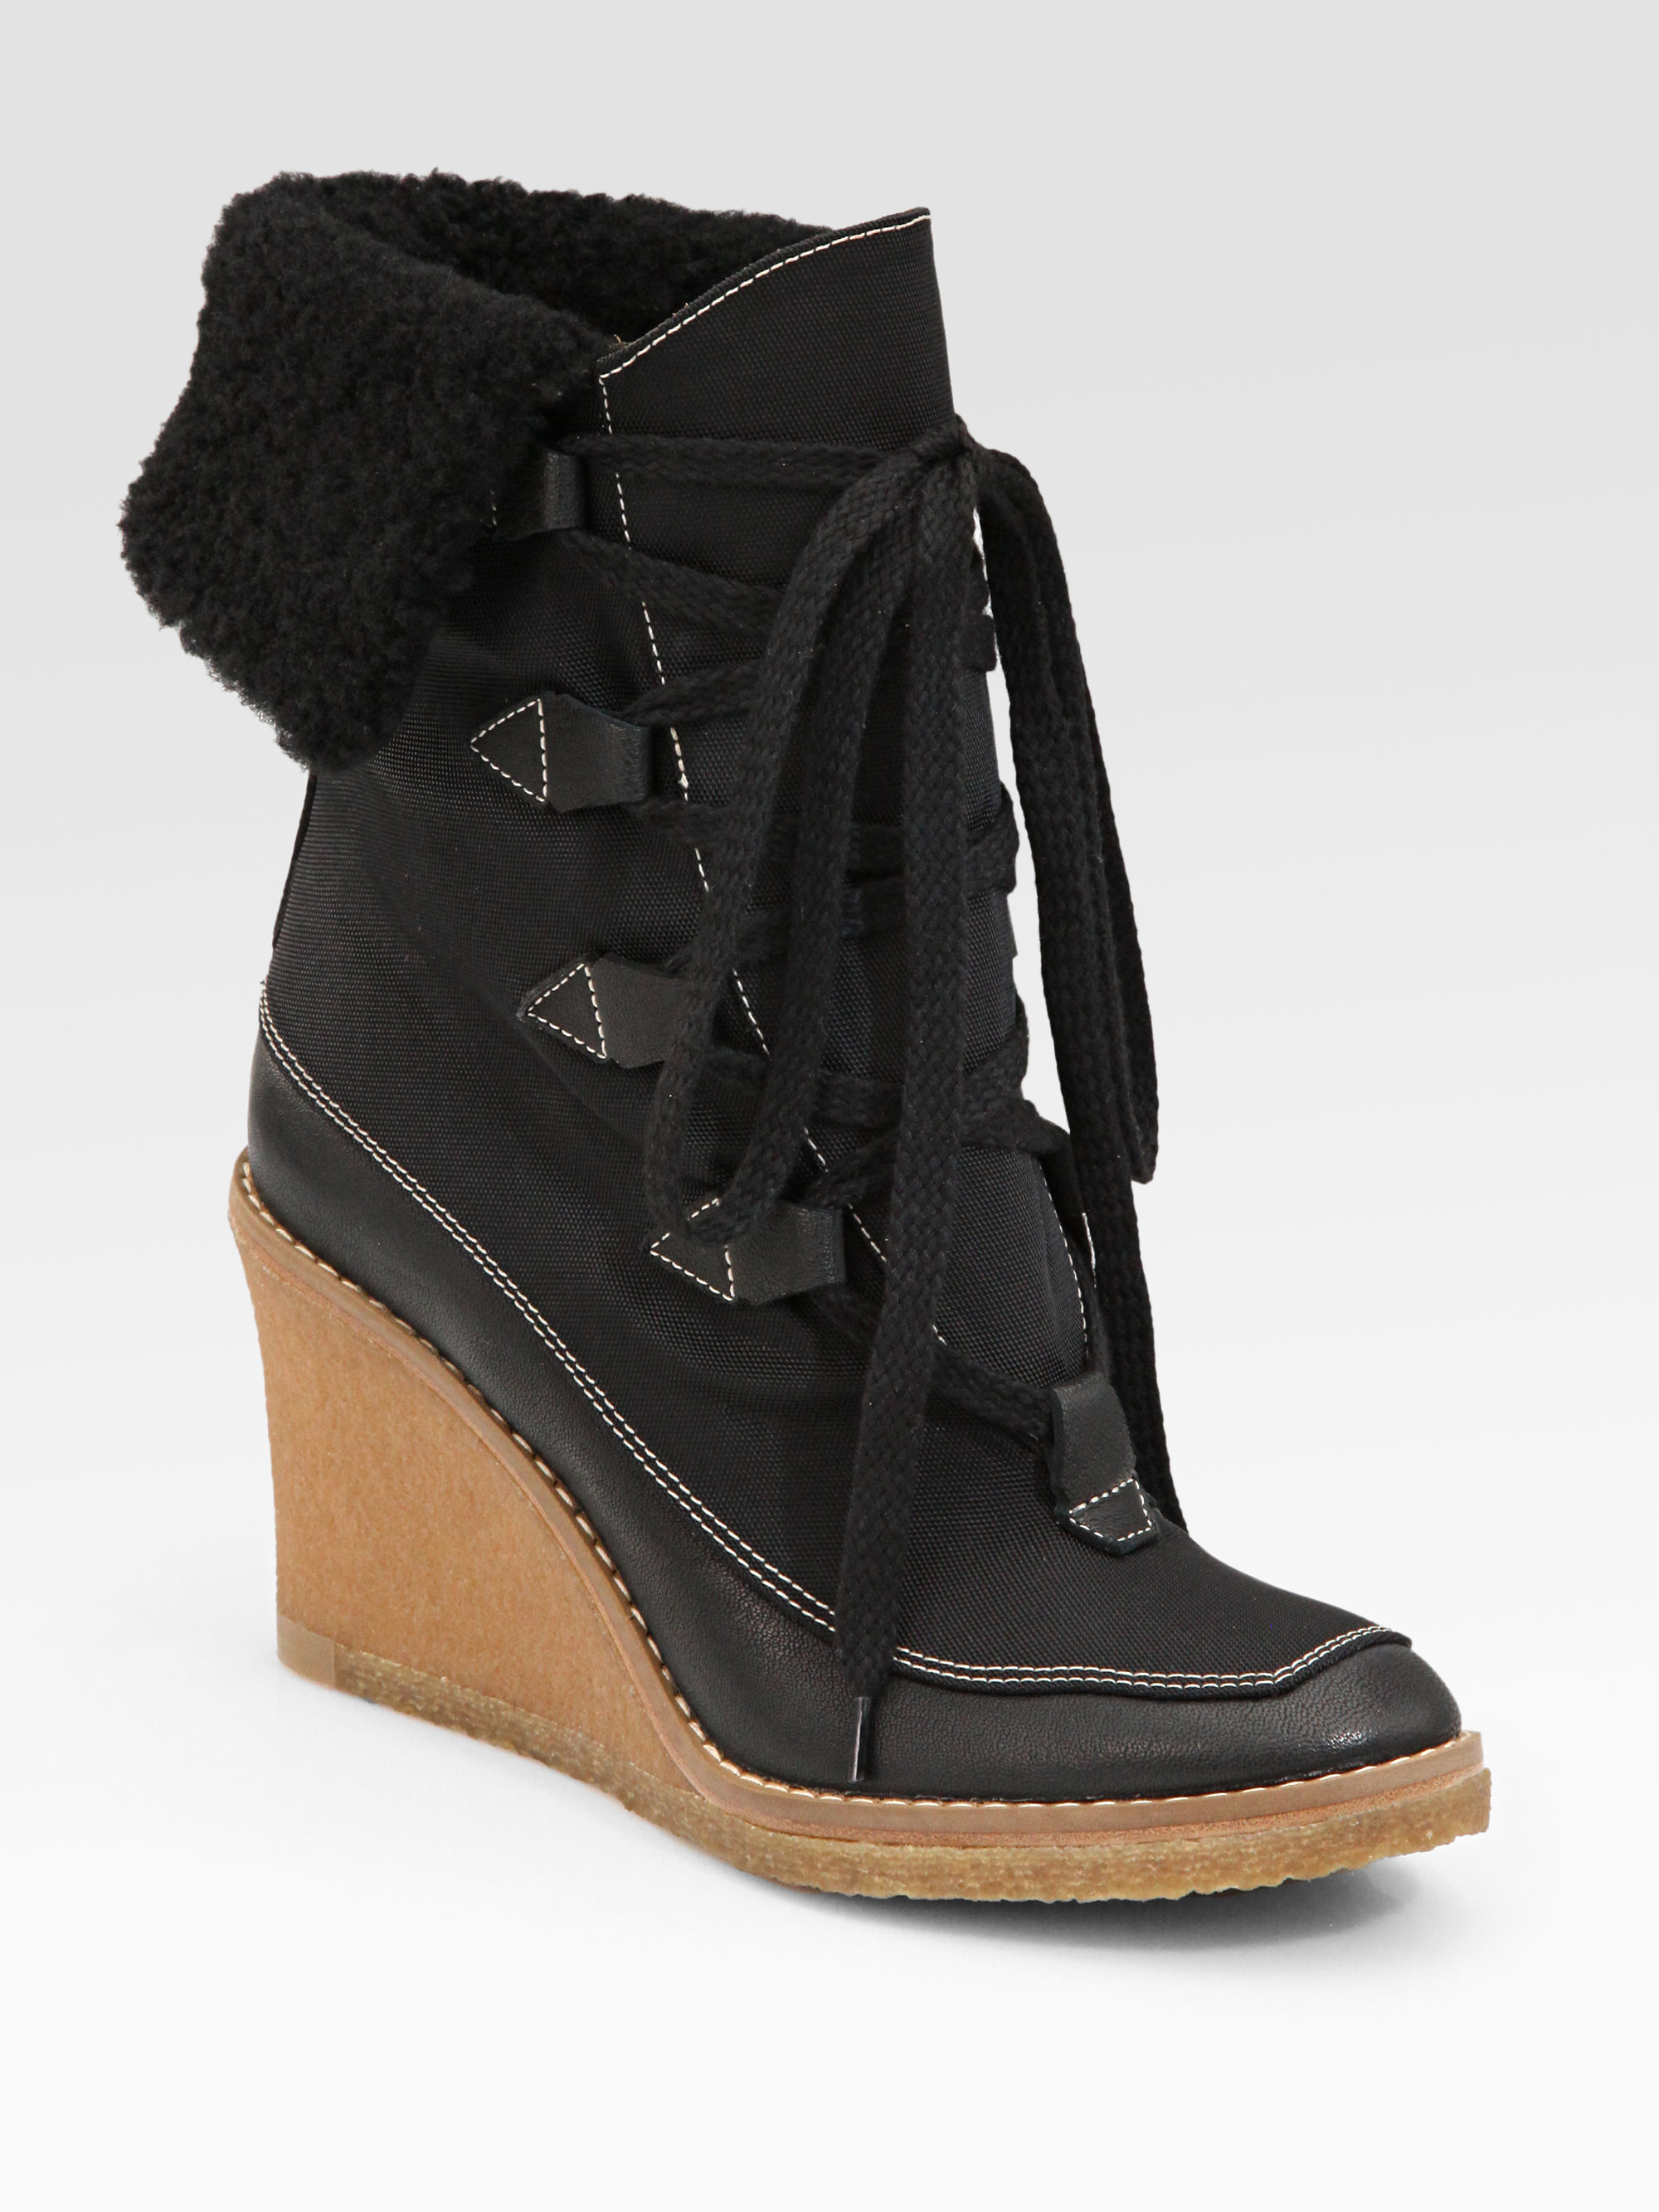 chlo 233 lace up shearling wedge ankle boots in black lyst